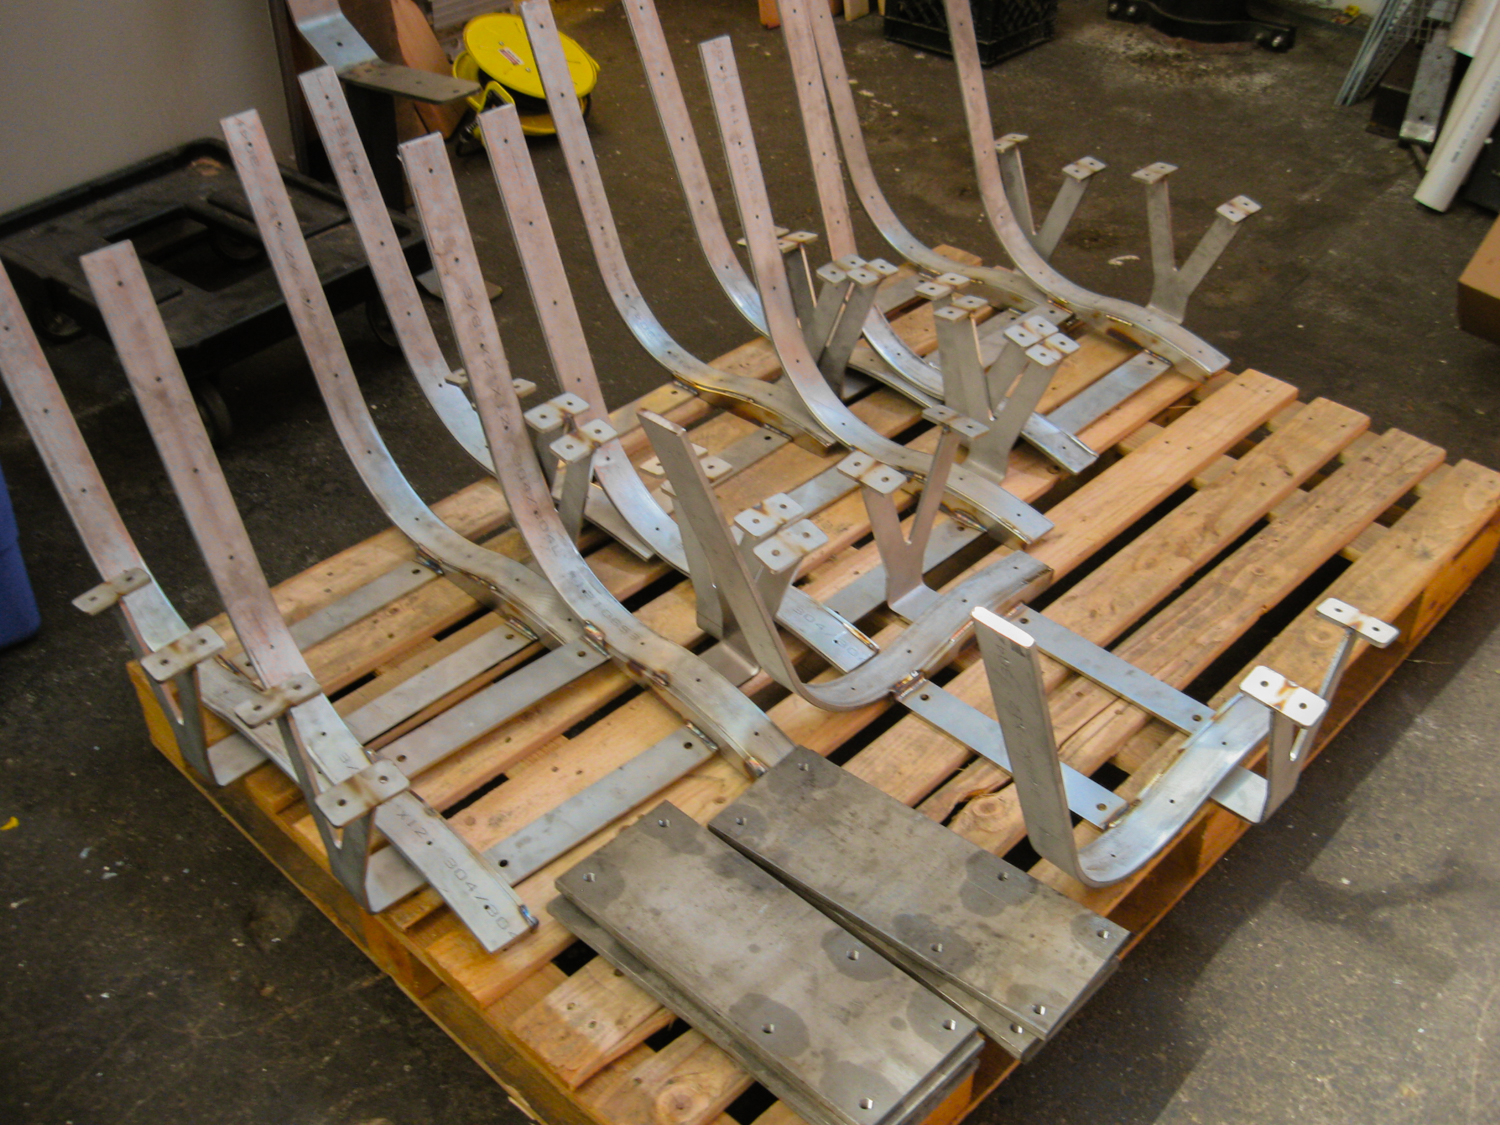 The frames of the stainless steel seats